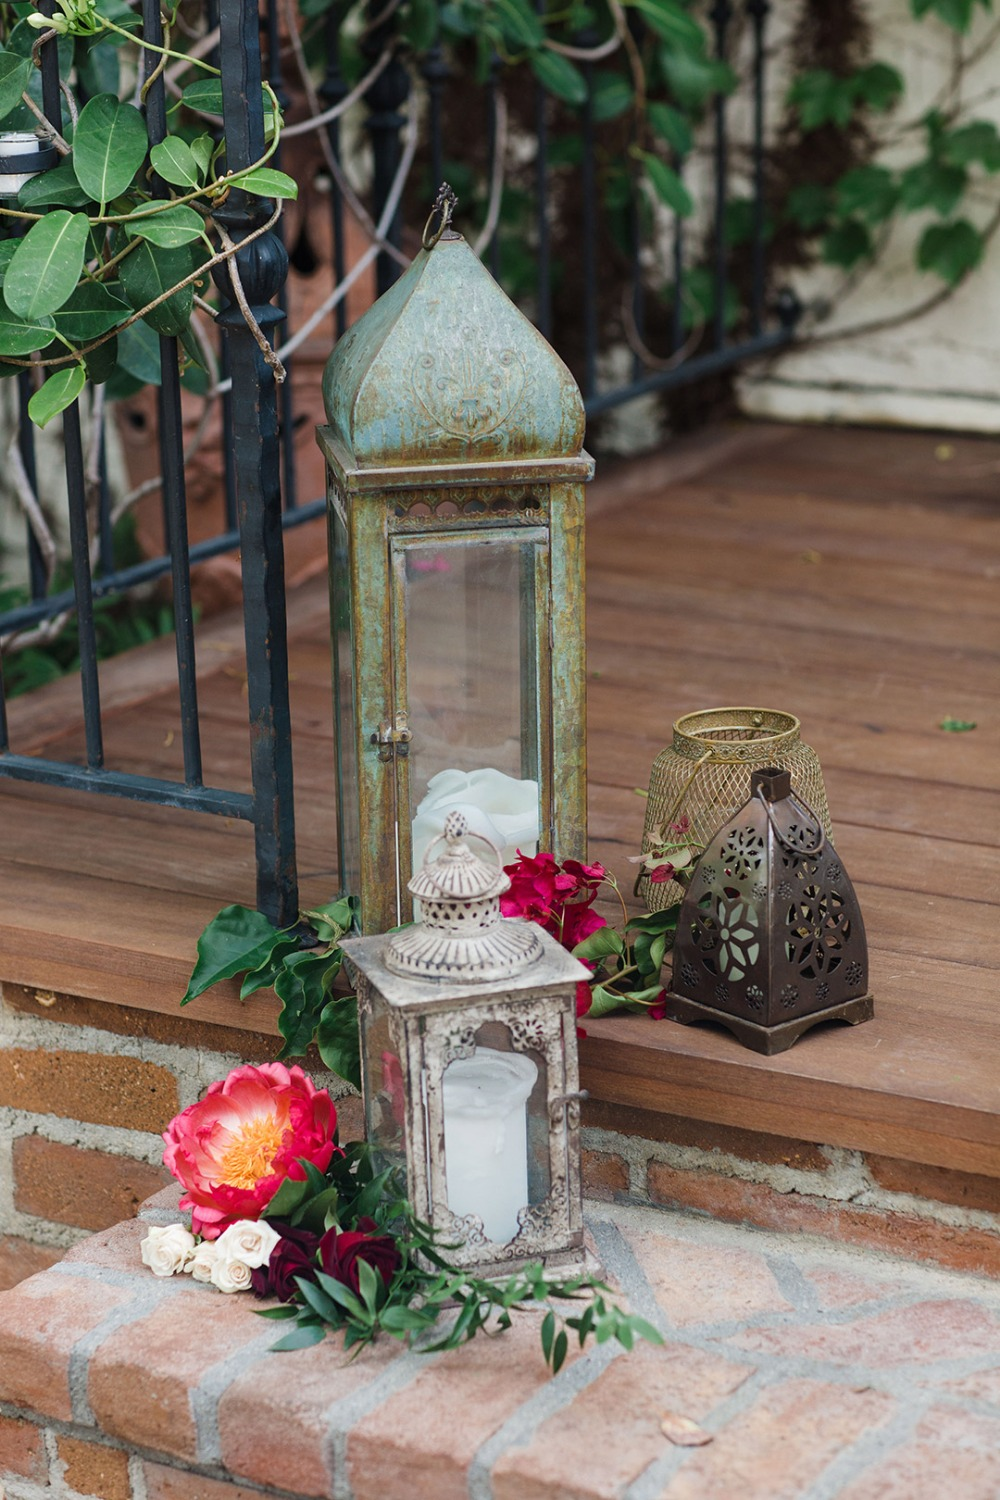 Ceremony decor with lanterns